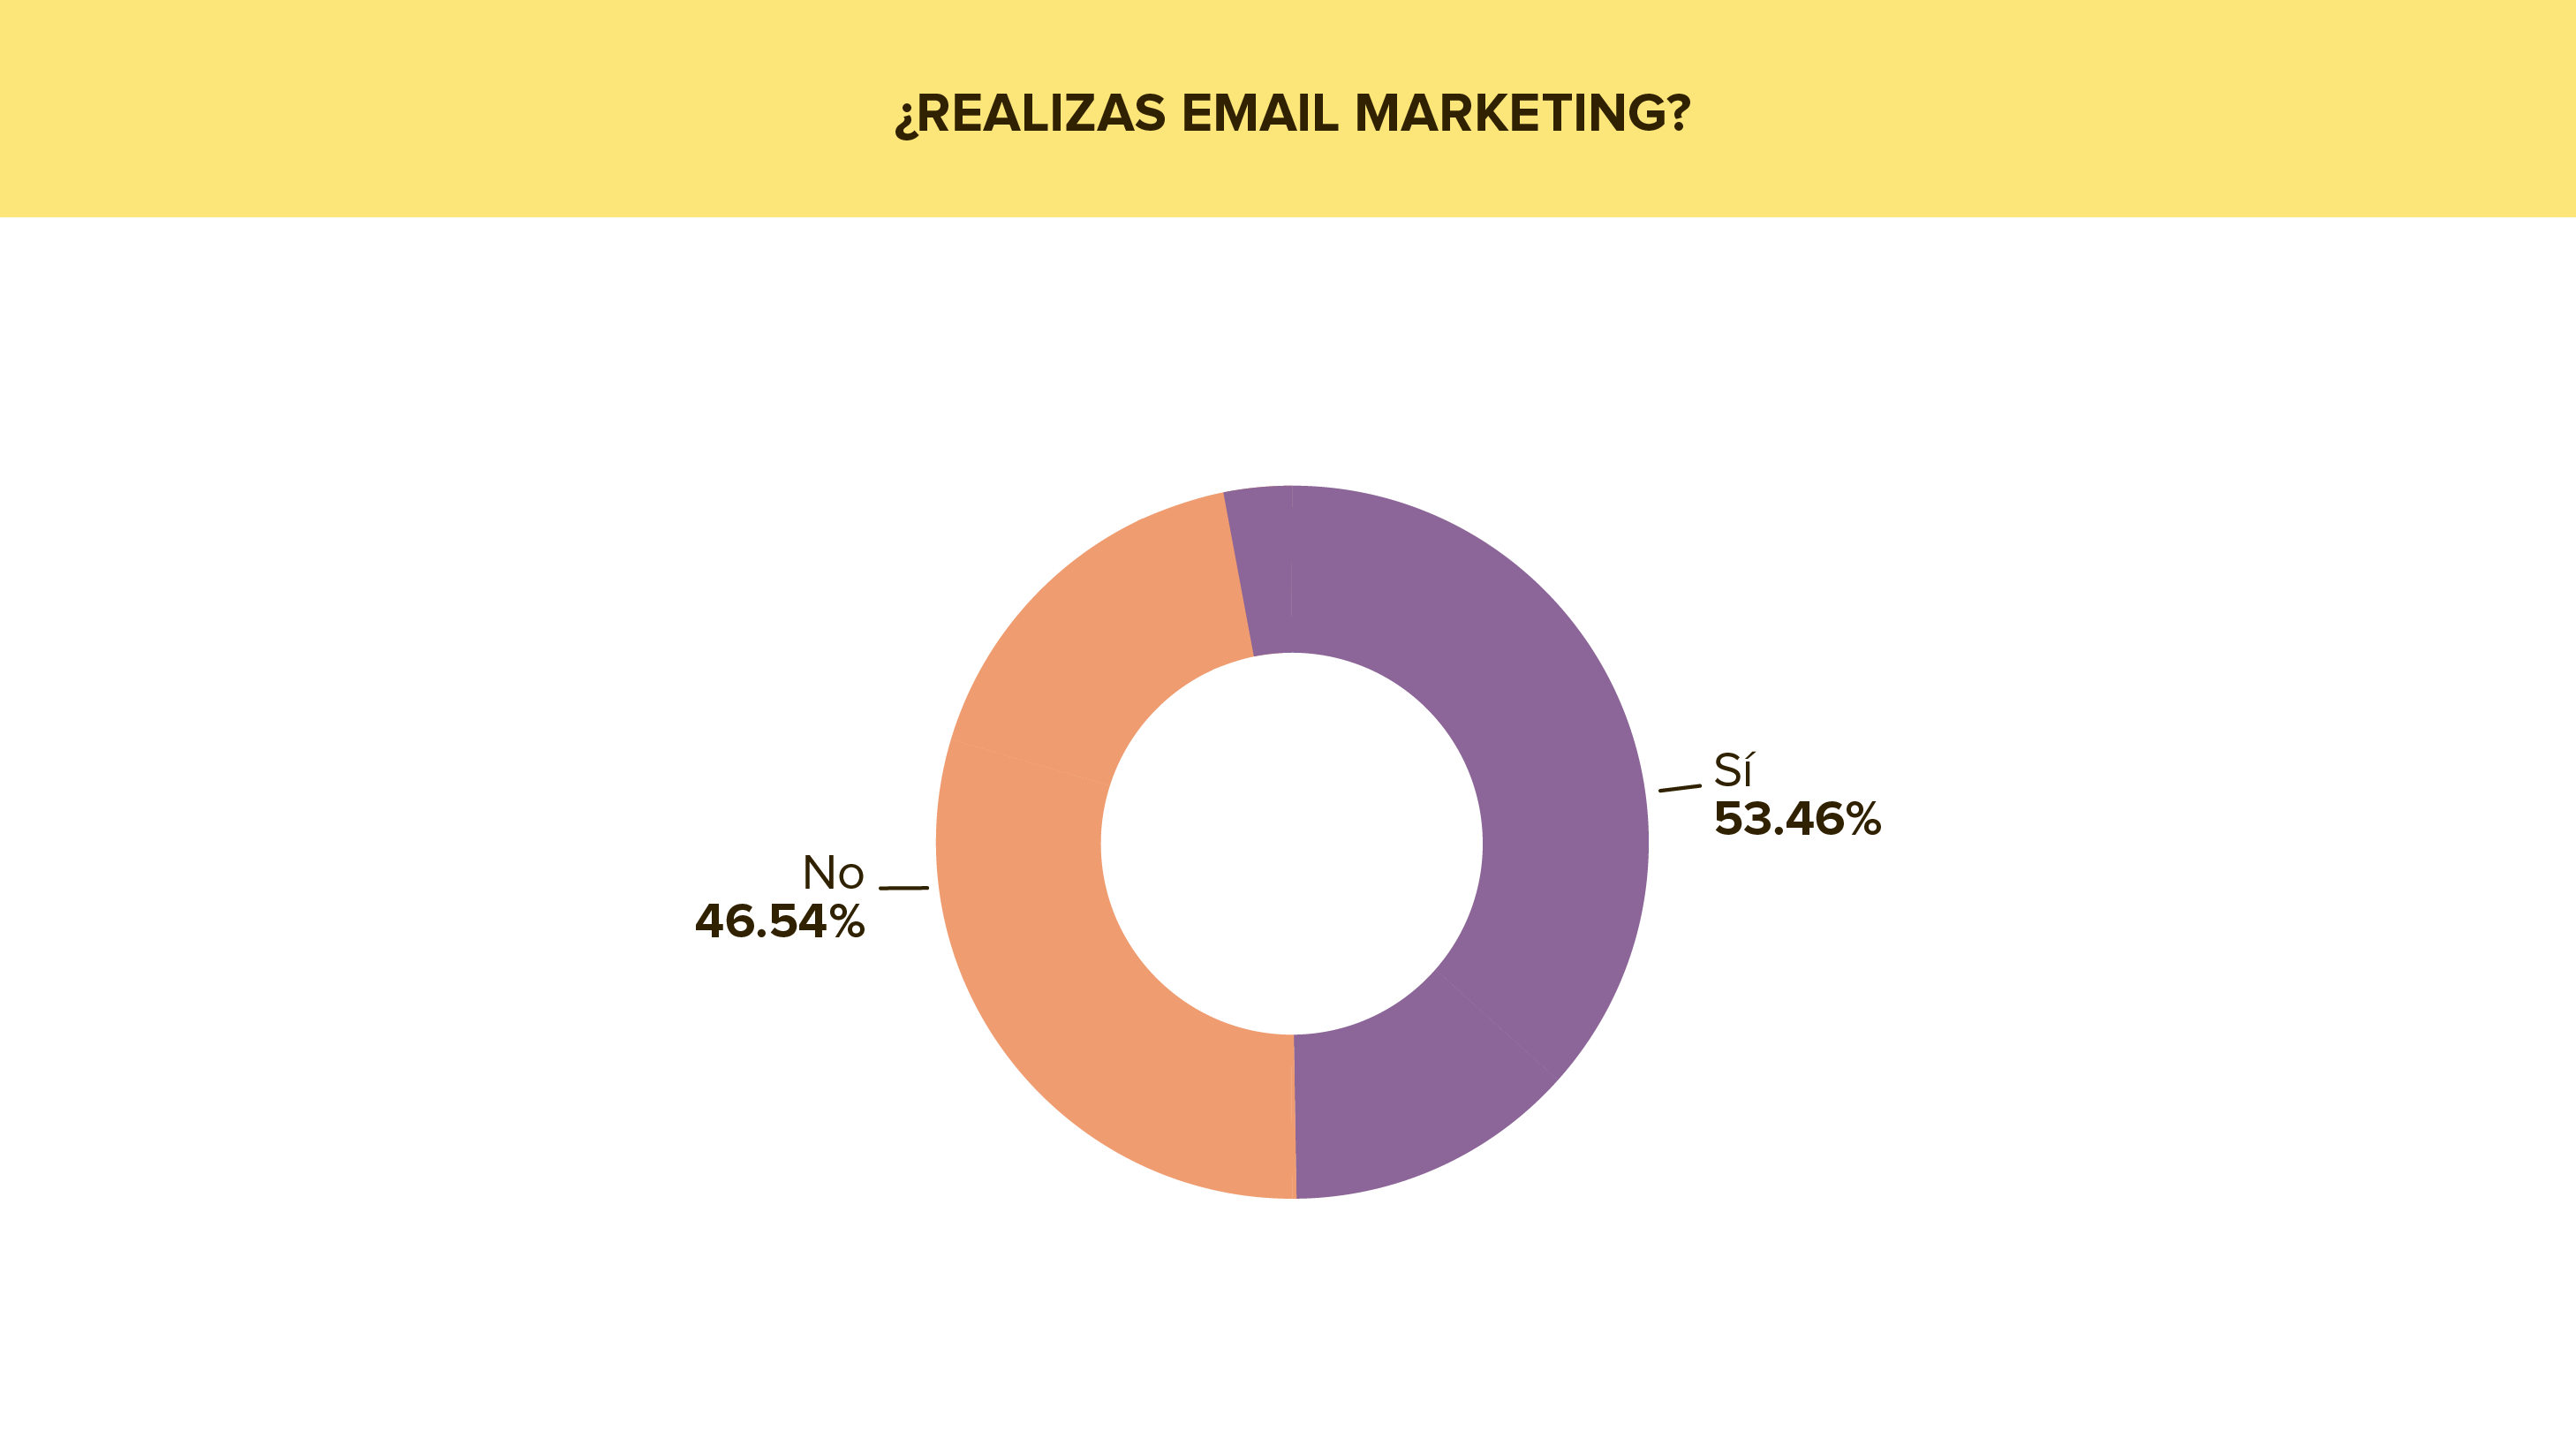 Realiza Email Marketing